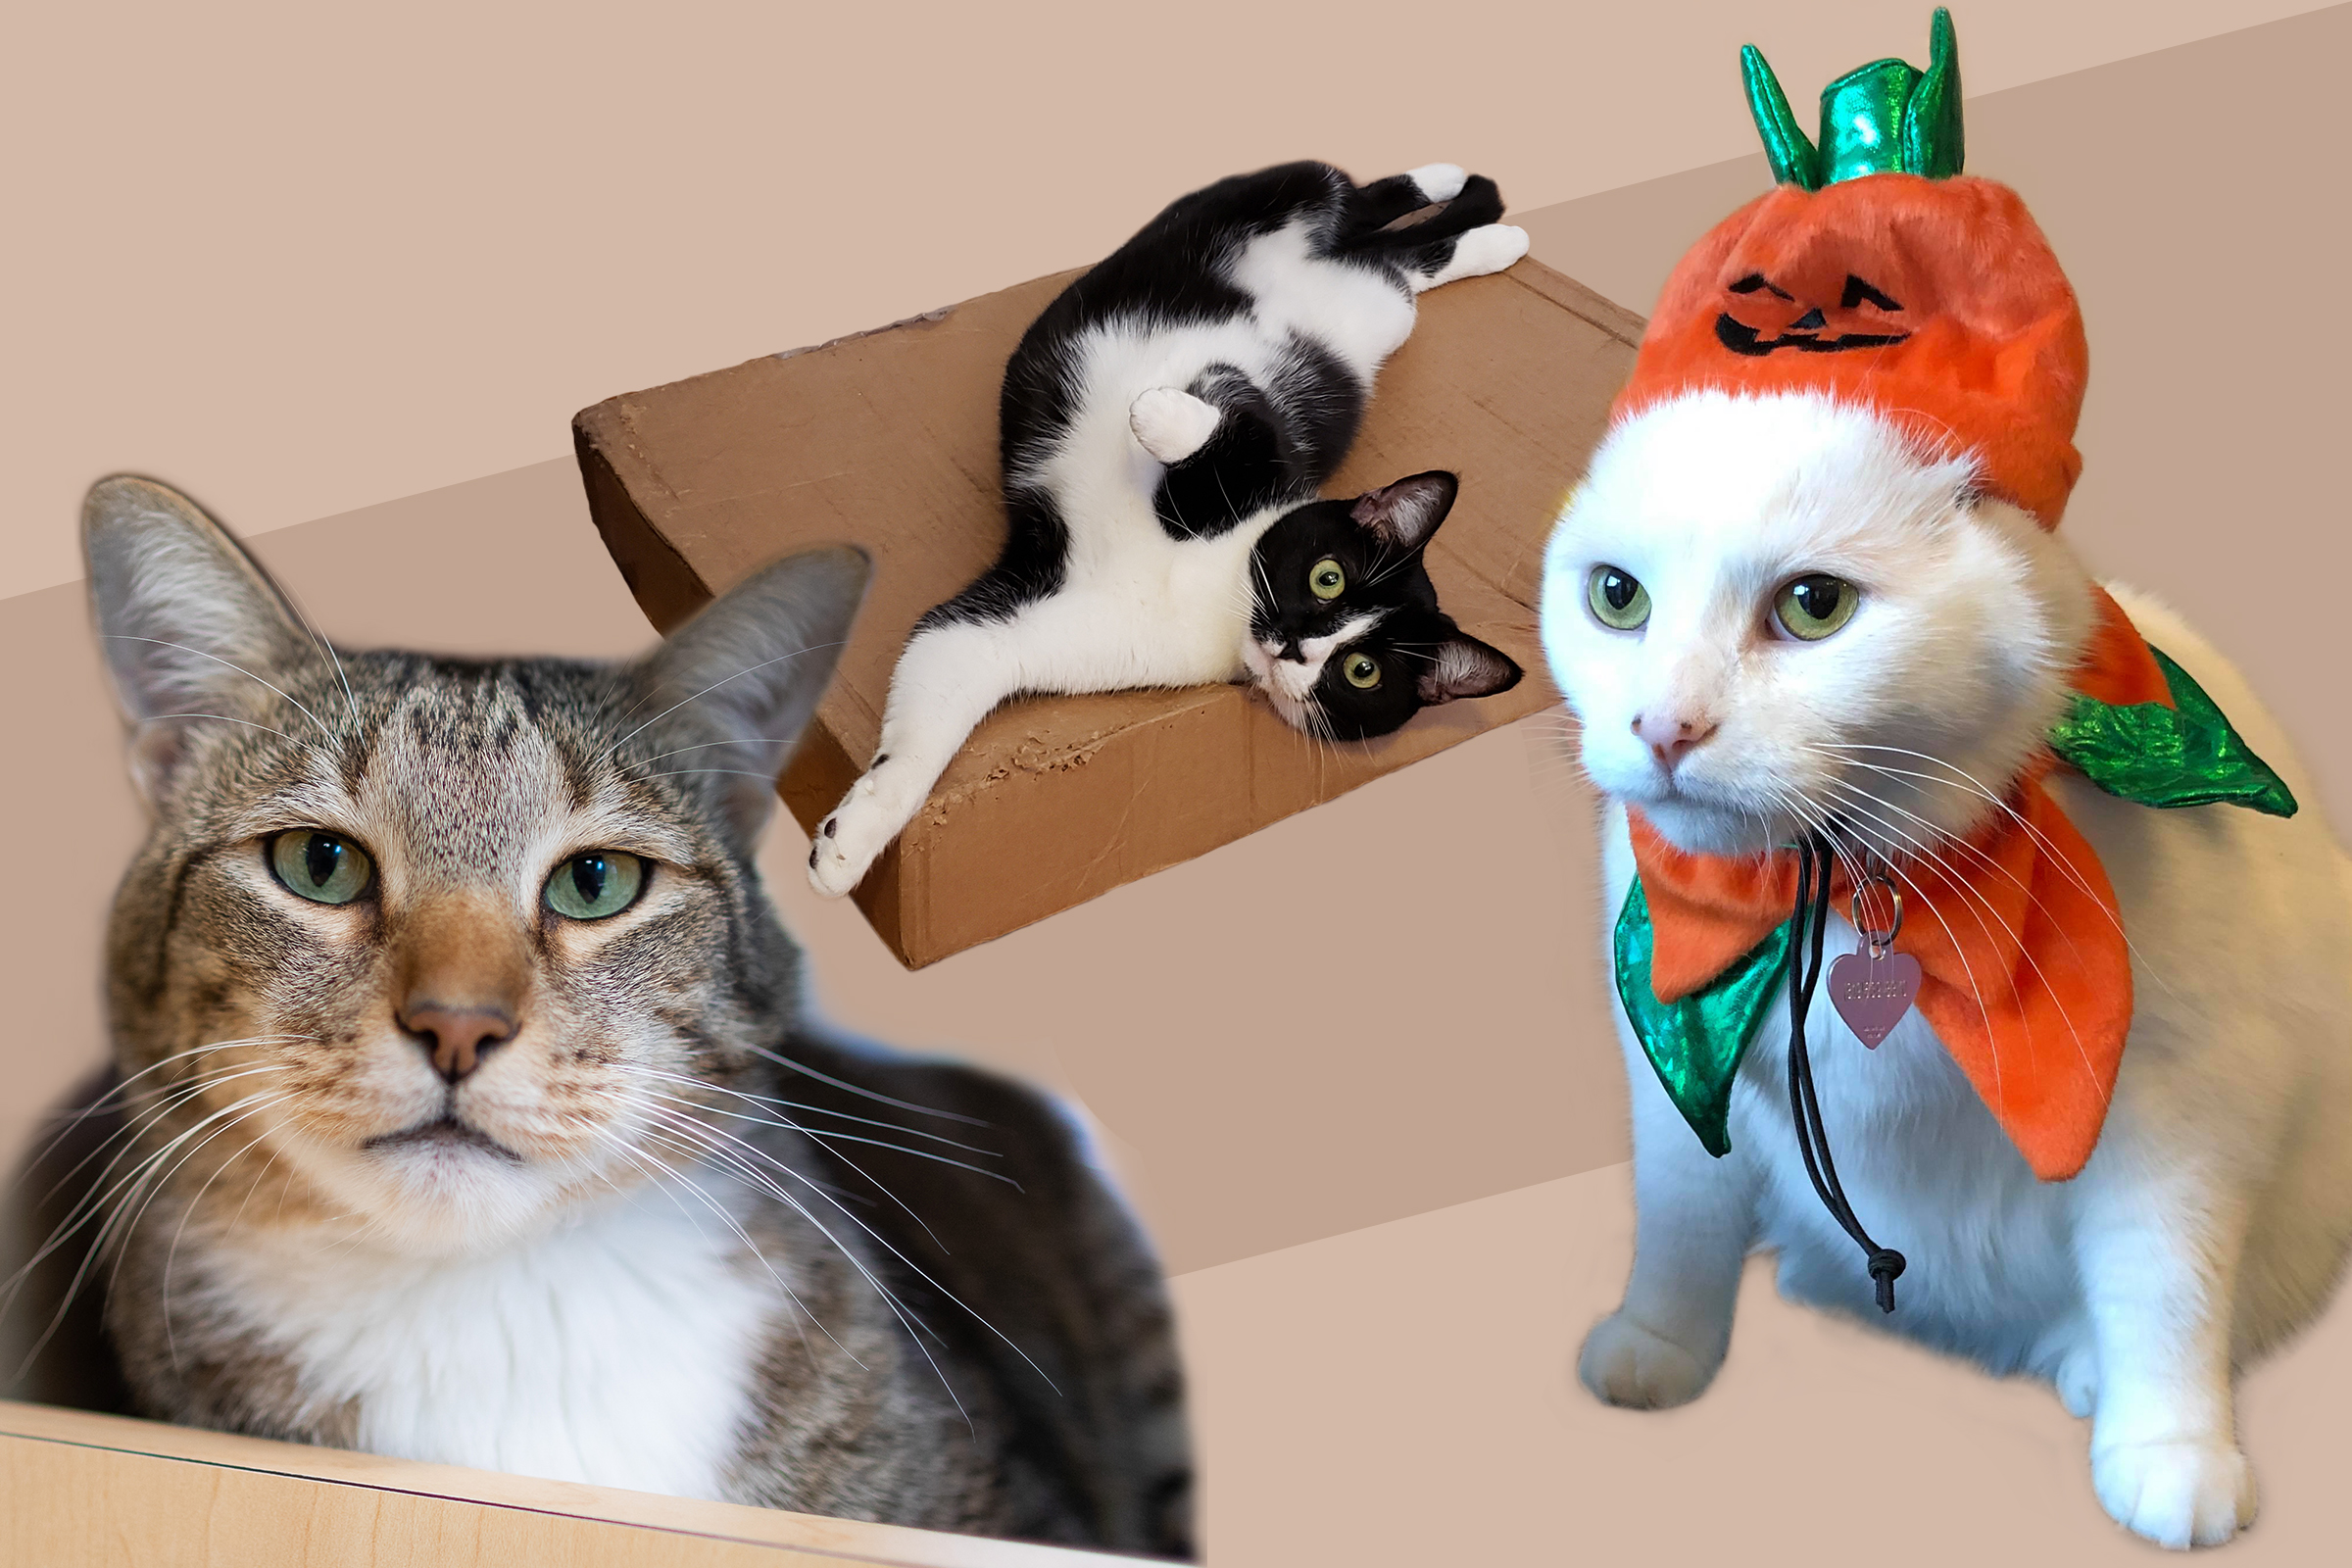 Famous Internet Cats Ranking Best Funny Cat Videos Memes Time